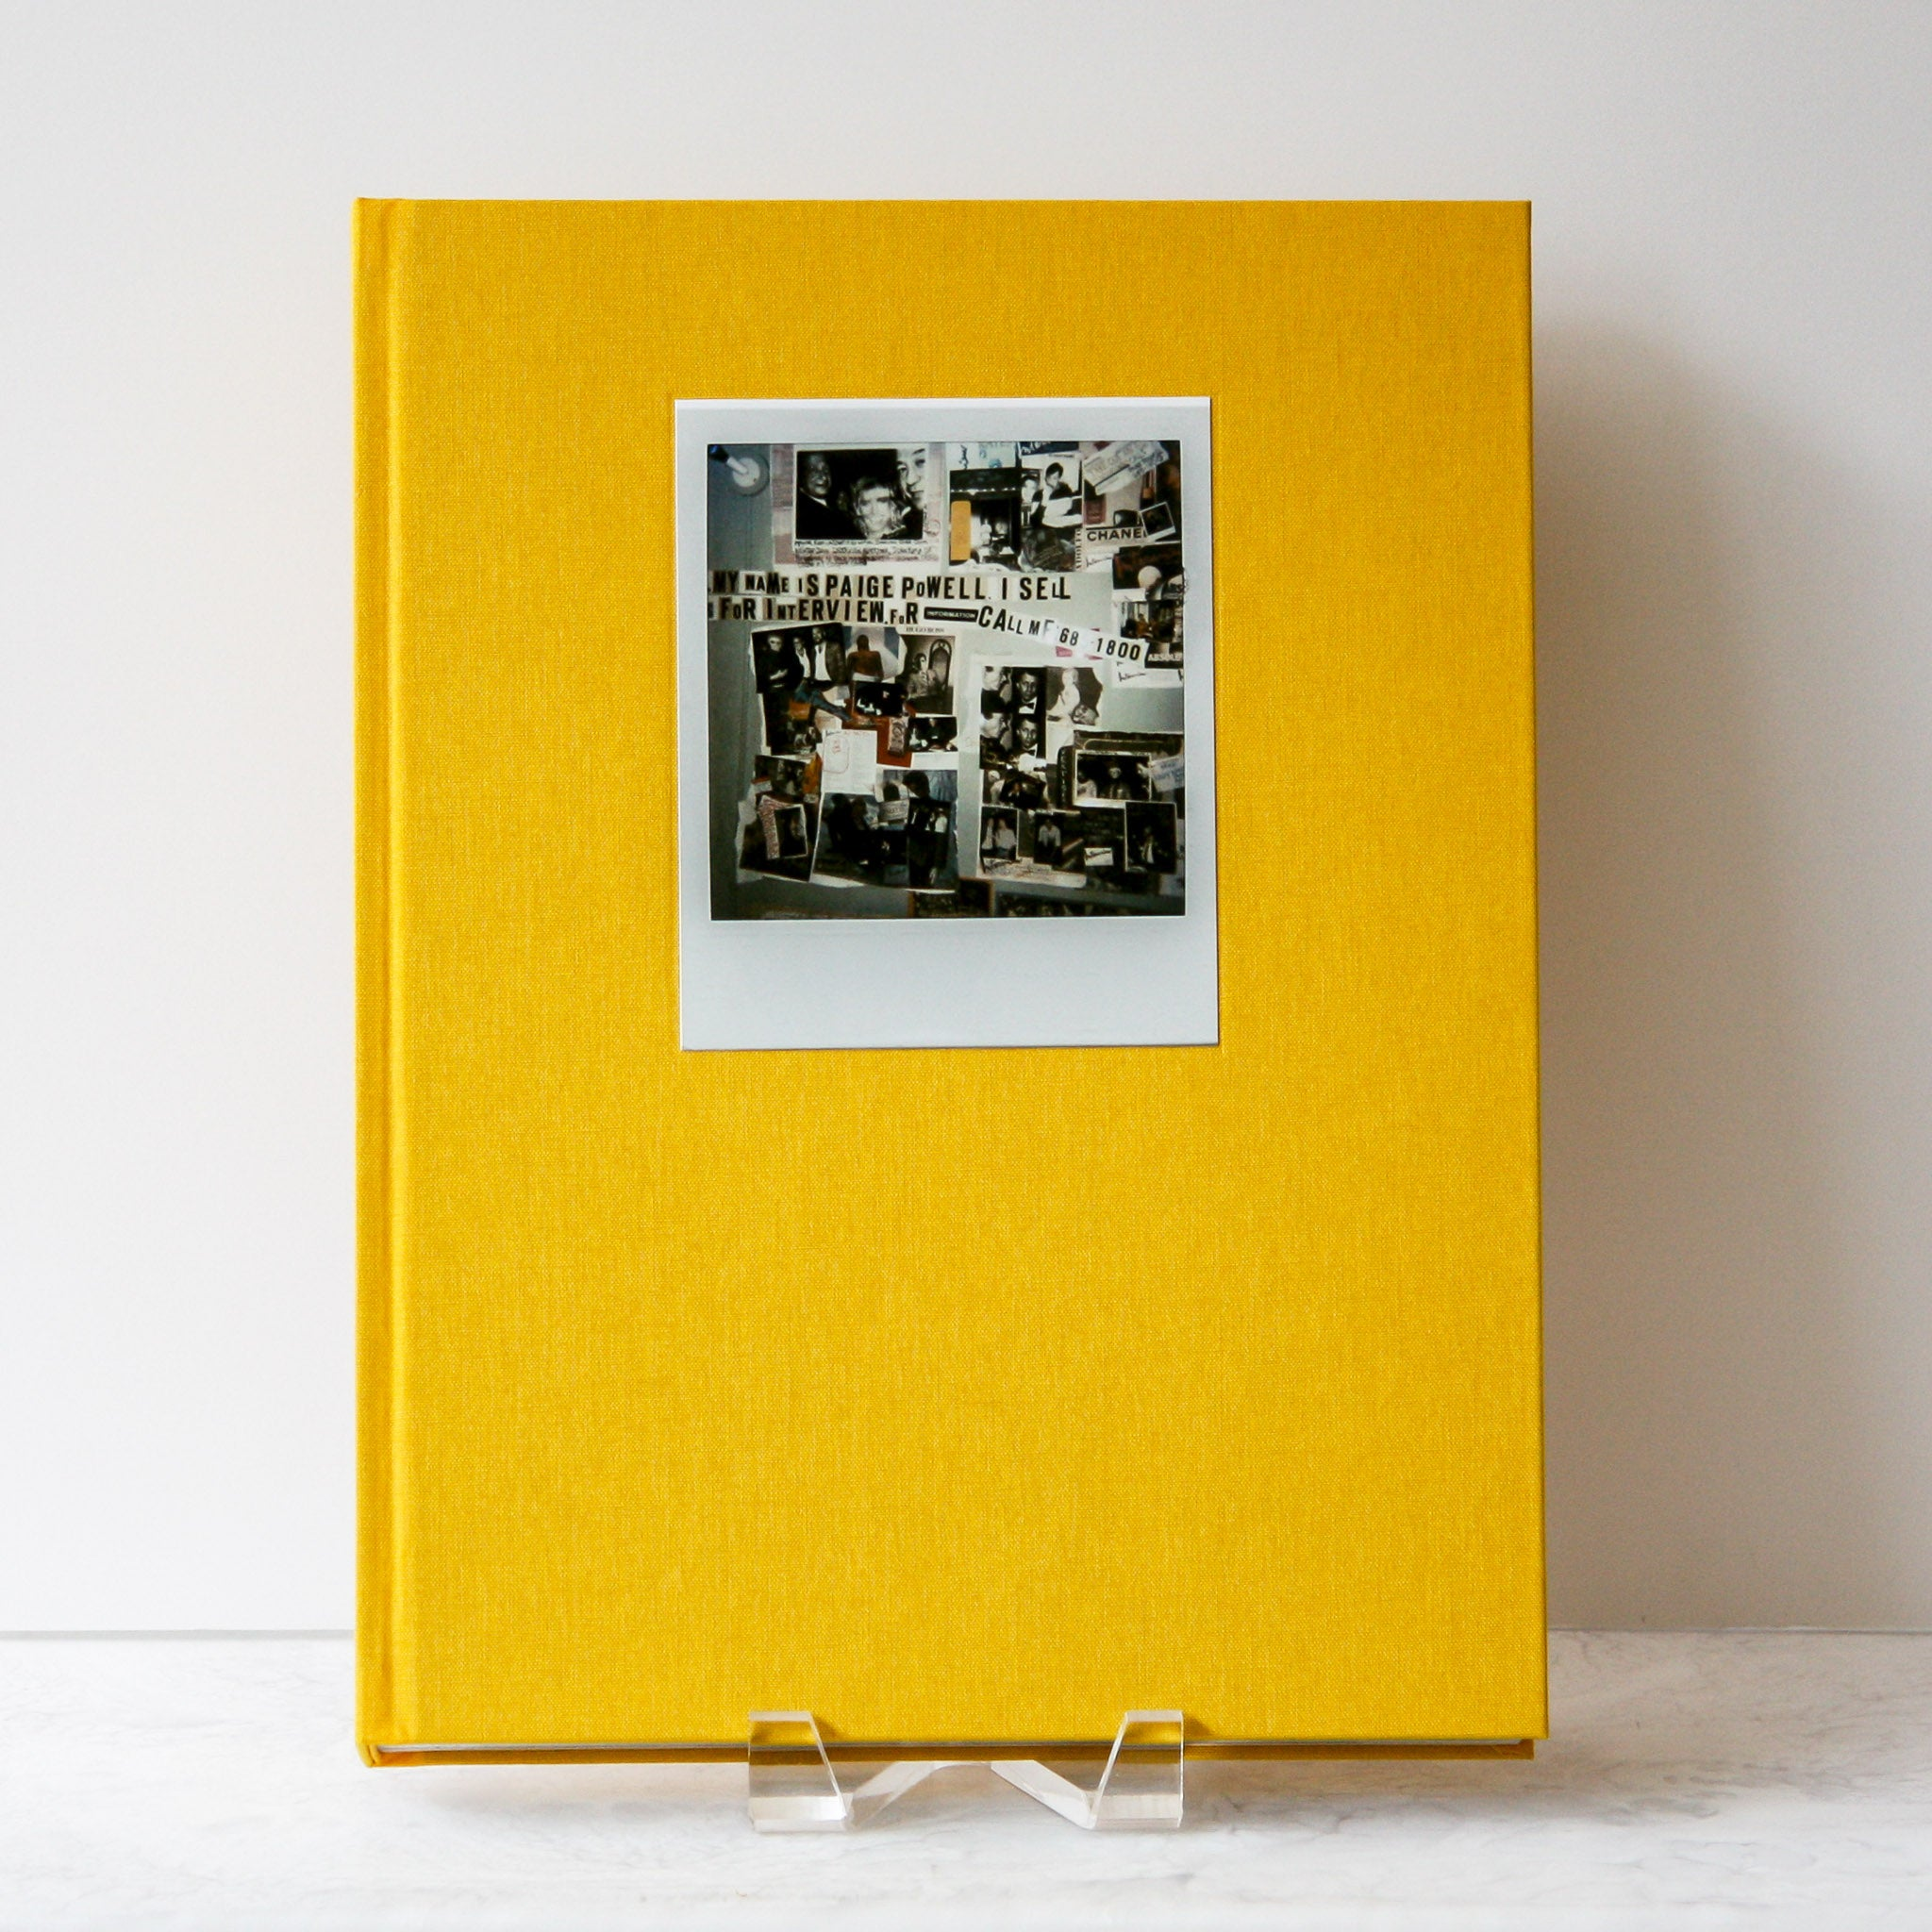 Beulah Land book by photographer Paige Powell